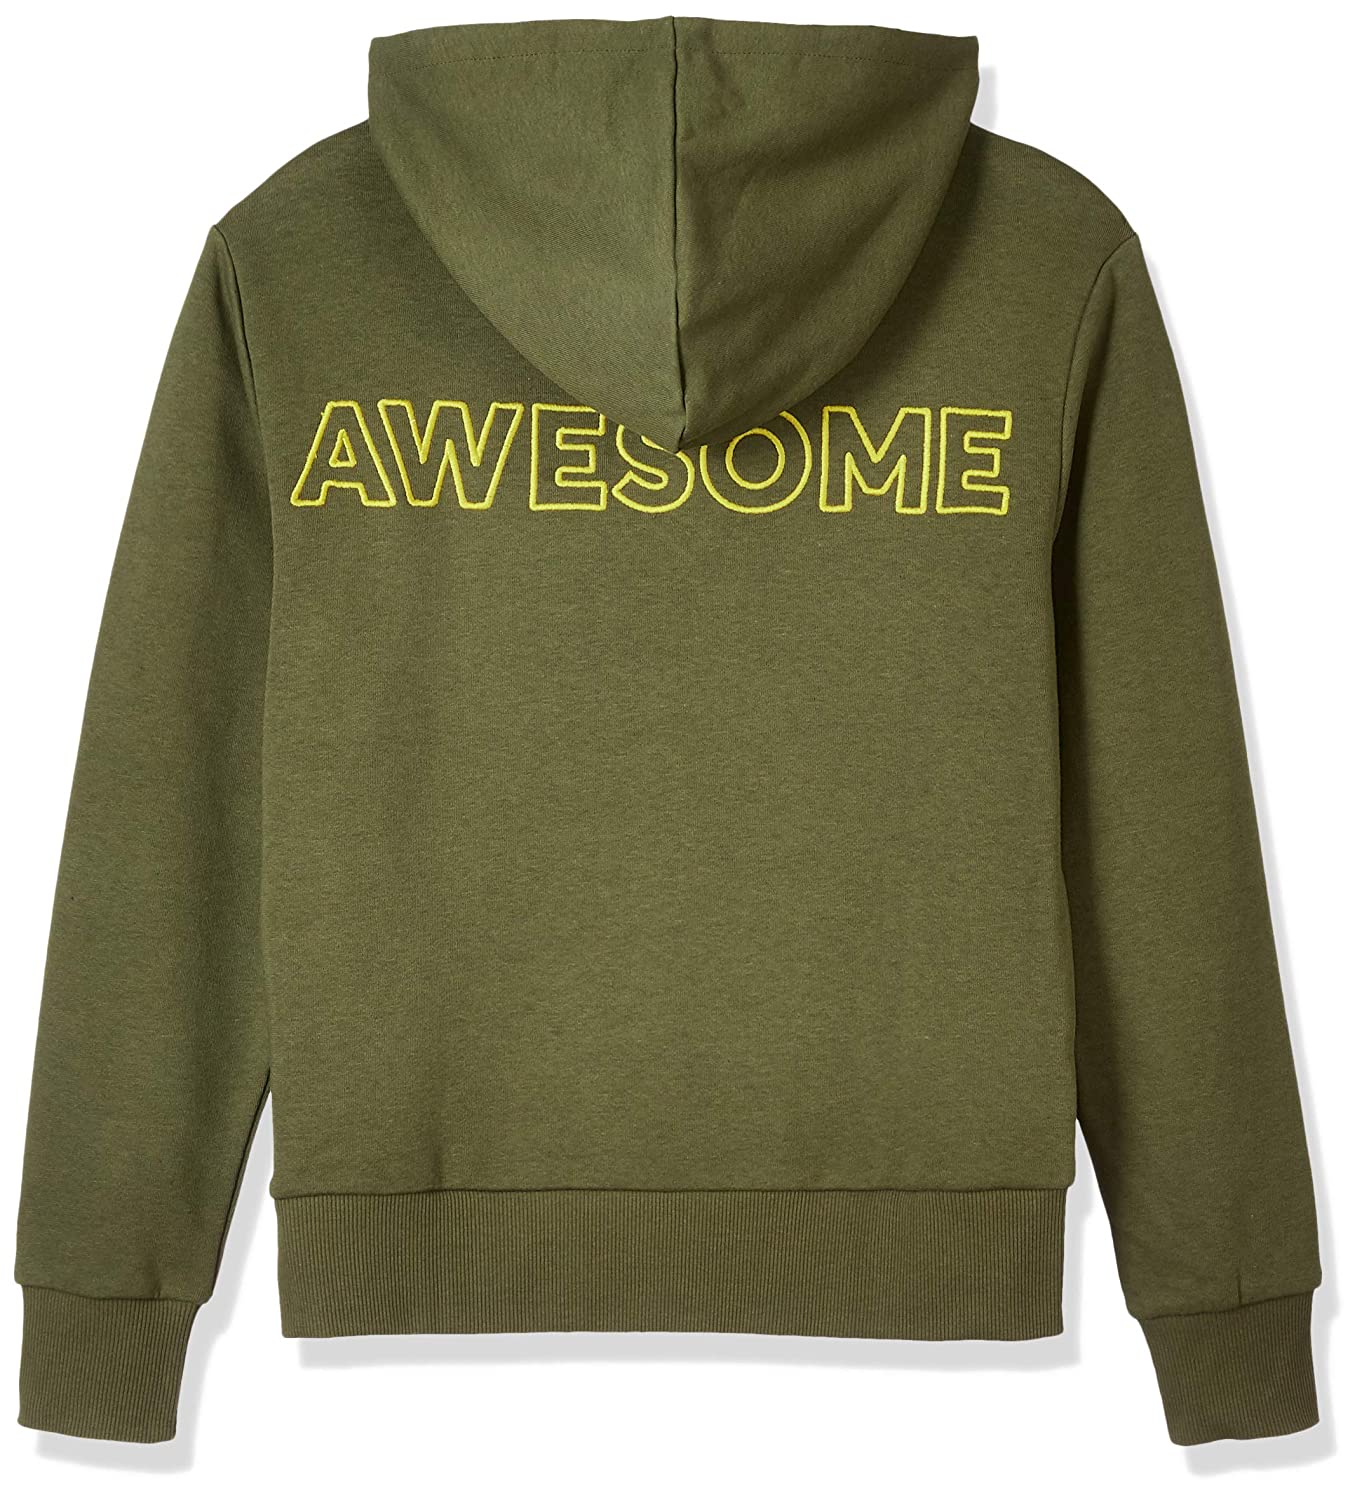 A for Awesome Youth Boys or Girls Long Sleeve Hoodie Sweater AZ181078